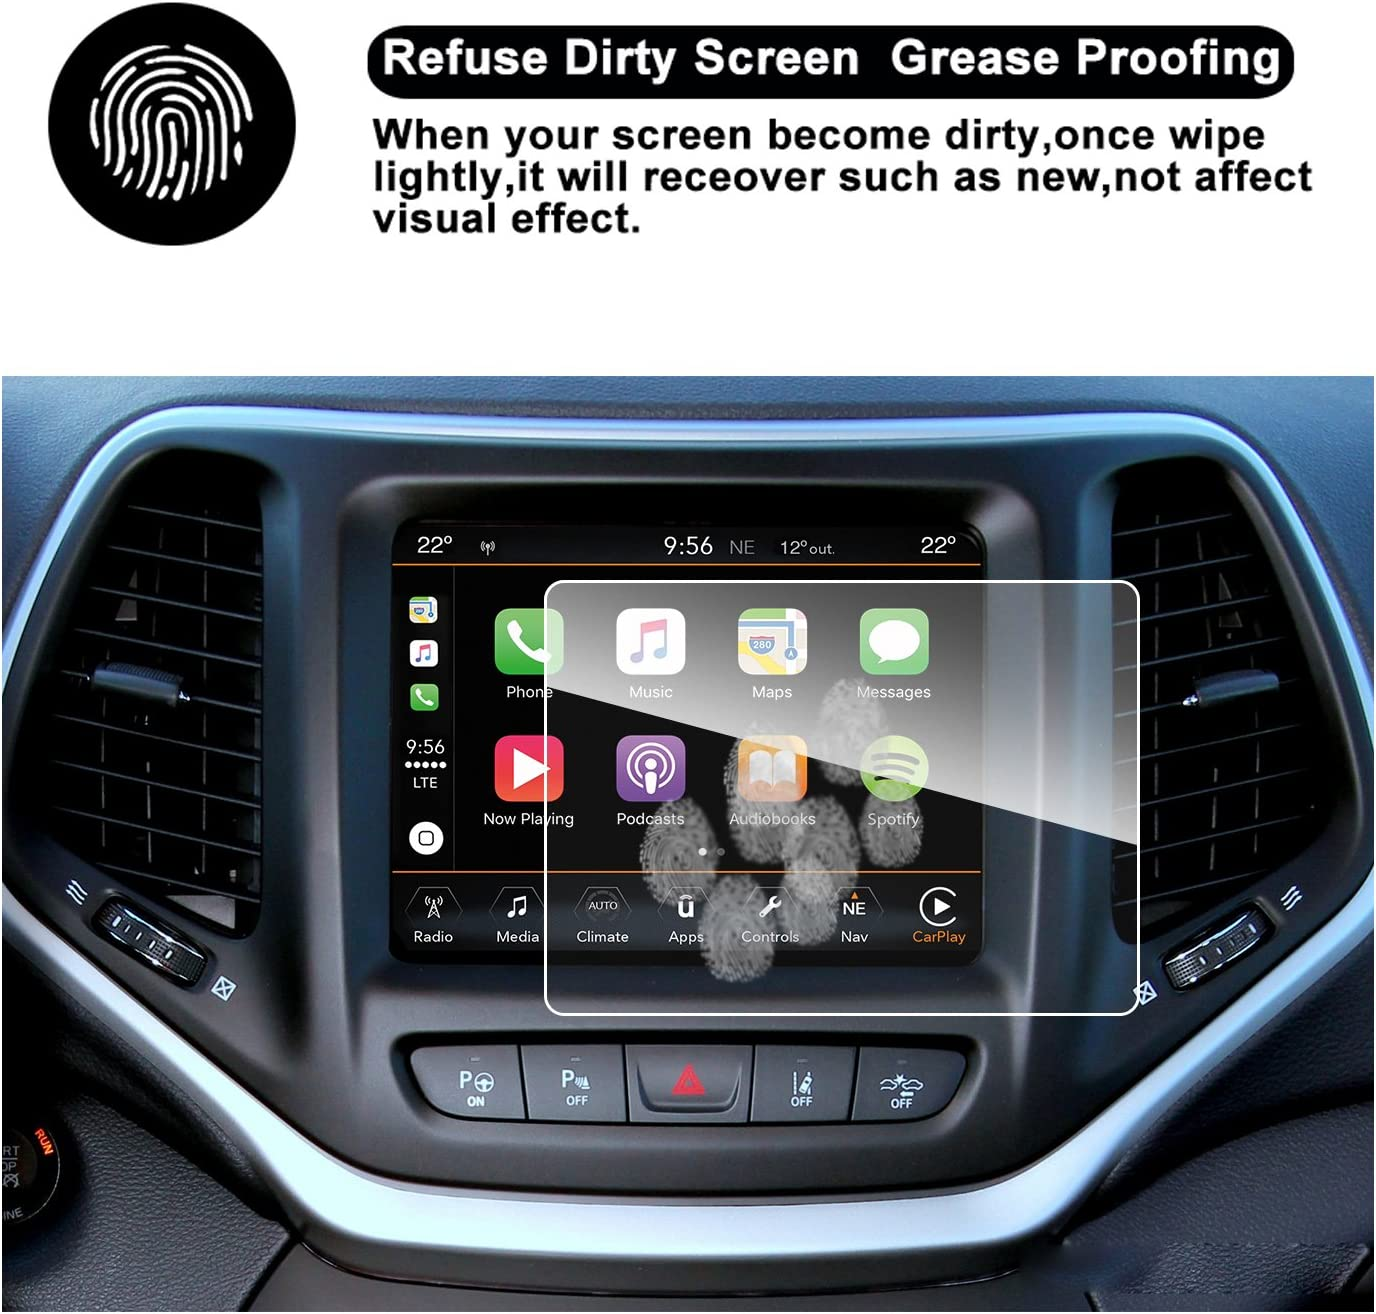 RUIYA HD Clear Tempered Glass Car in-Dash Screen Protective Film 8.4-Inch 2014-2018 Cherokee Uconnect Touch Screen Car Display Navigation Screen Protector